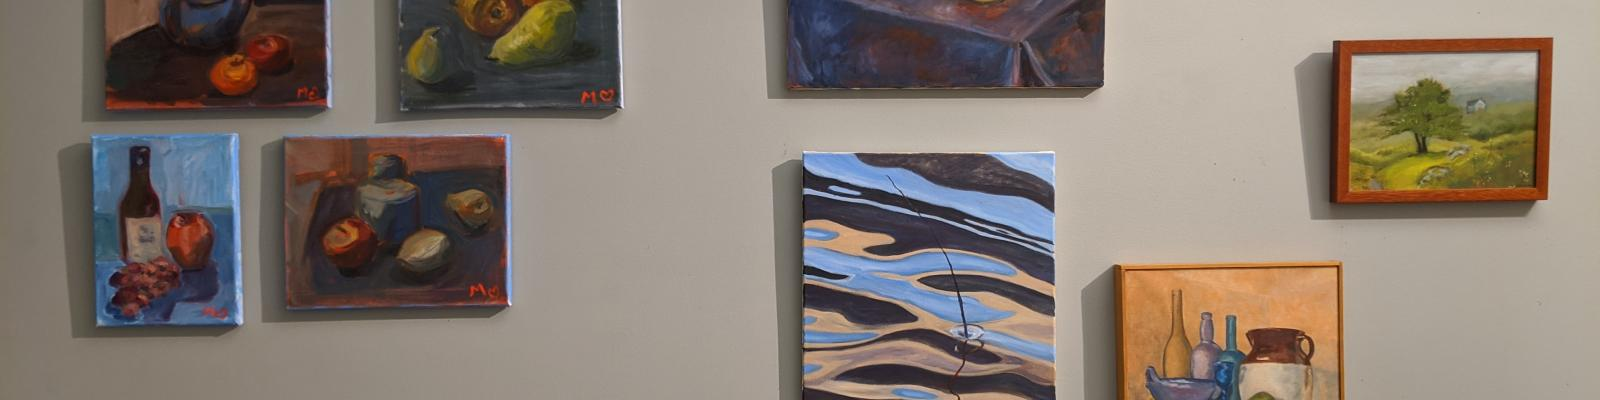 Lois Andersen Monday Night Oil Painting Class Gallery 3 1